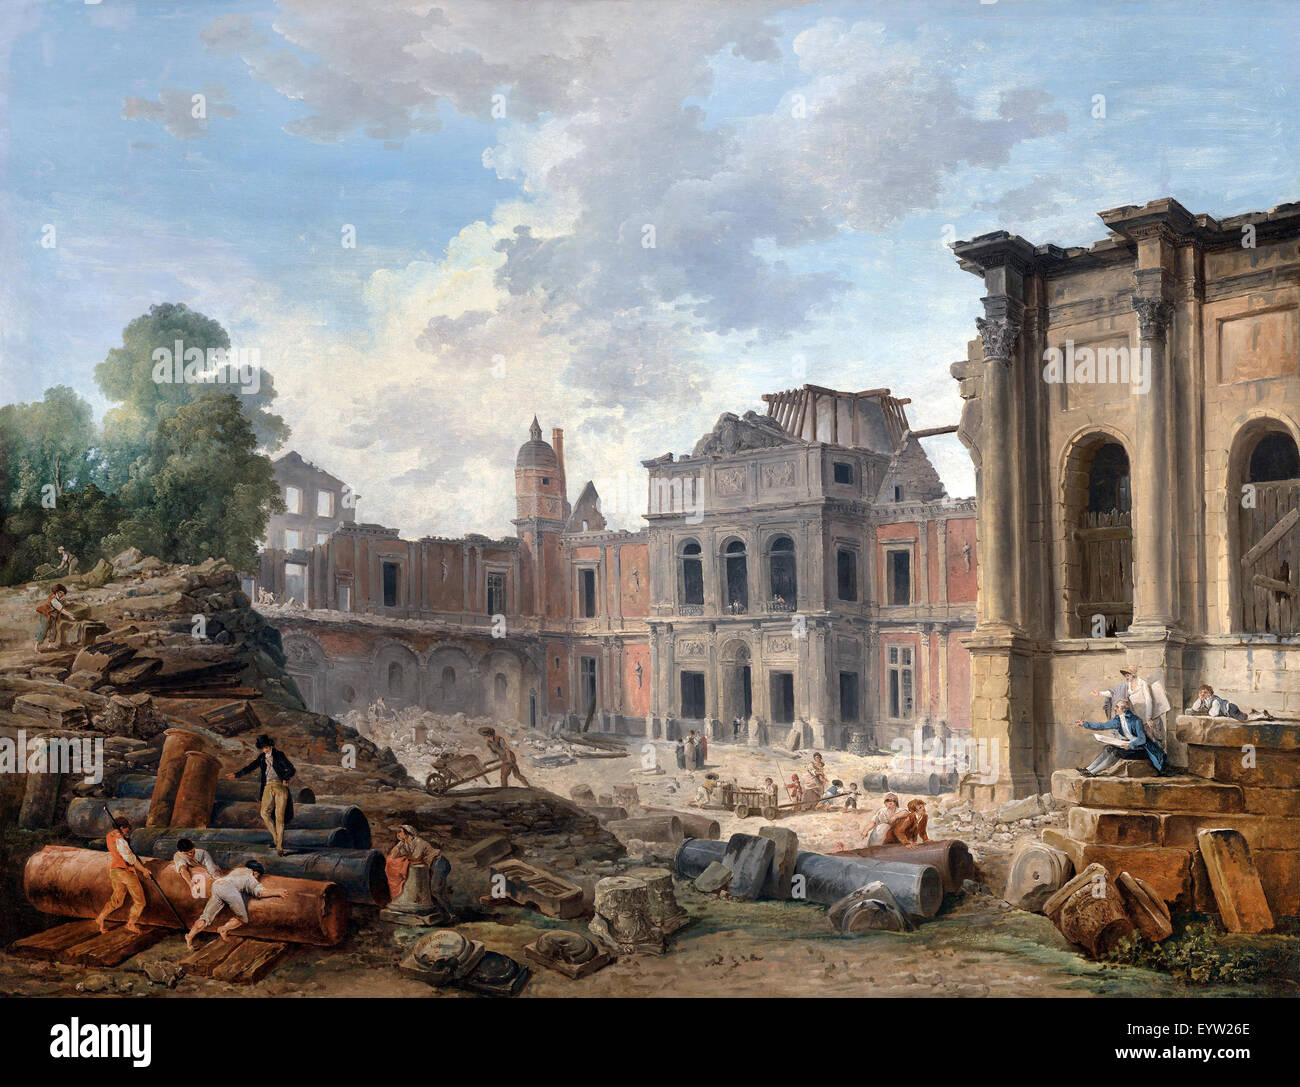 Hubert Robert, Demolition of the Chateau of Meudon 1806 Oil on canvas. The J. Paul Getty Museum, Los Angeles, USA. - Stock Image